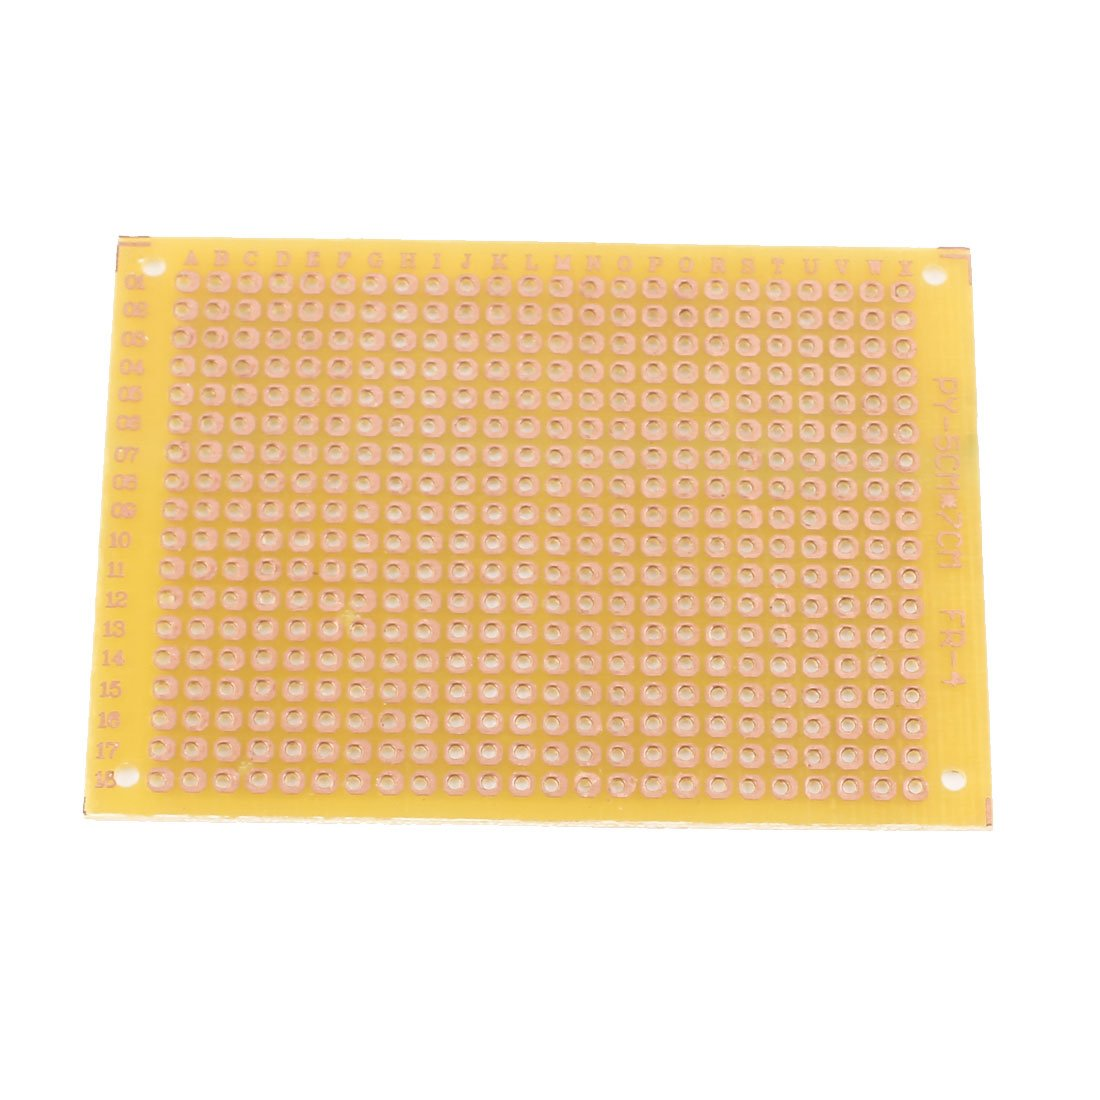 Uxcell 6pcs Prototyping Copper Pcb Stripboard Single Side Universal 10 Pcs 50mmx70mm Cover Circuit Board 5x7cm Industrial Scientific